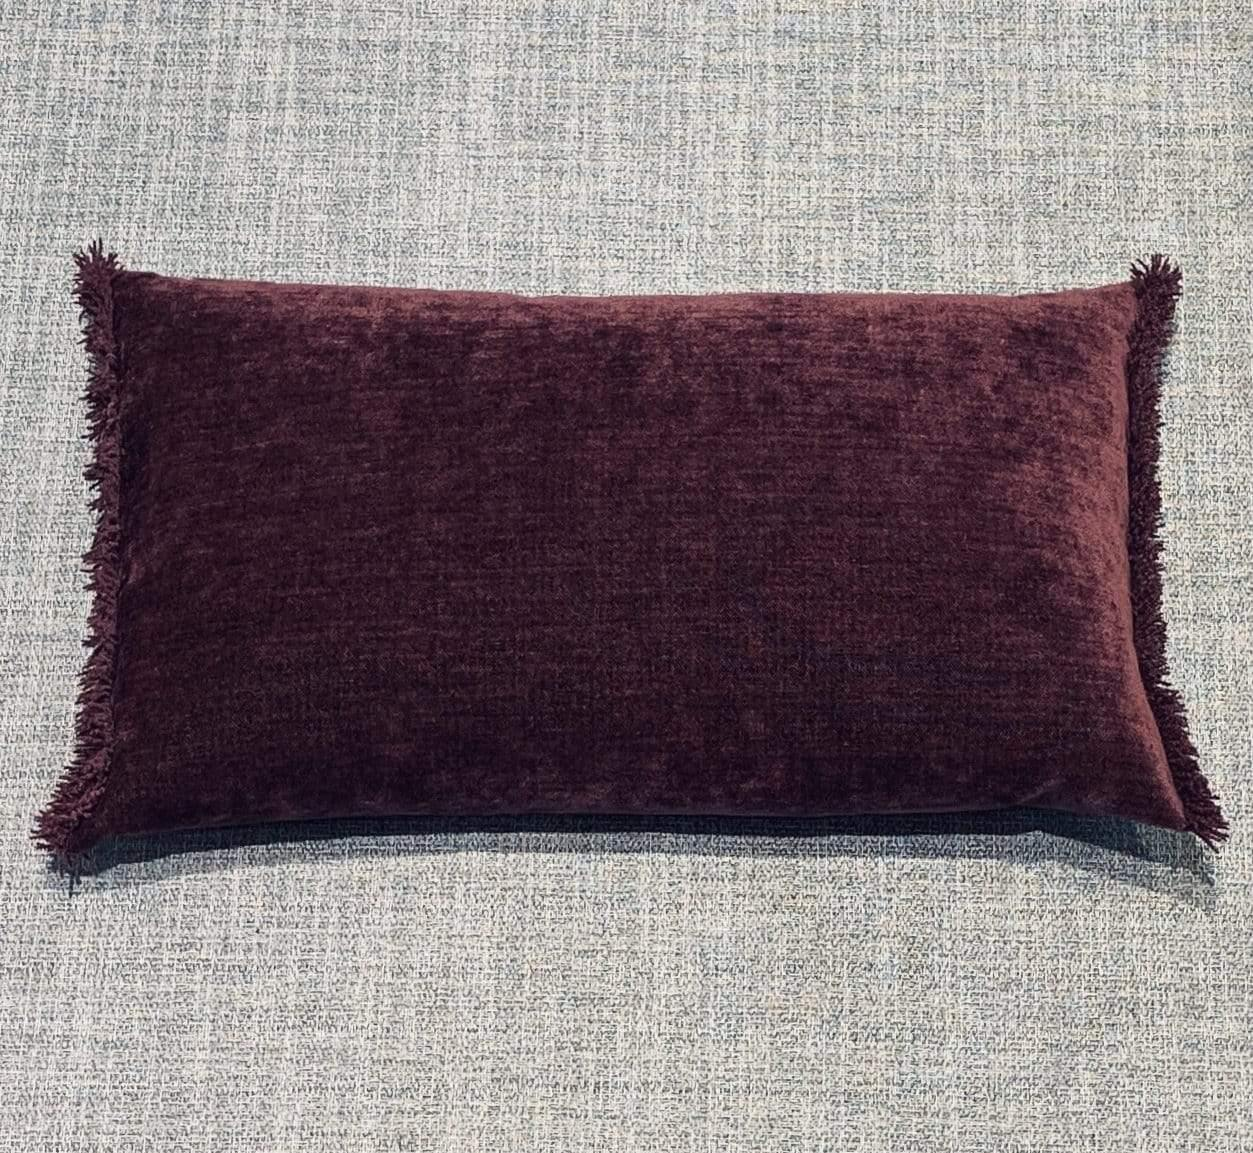 Cushion Bordeaux Nomad Luxe Chenille Cushion 12 x 20 inch